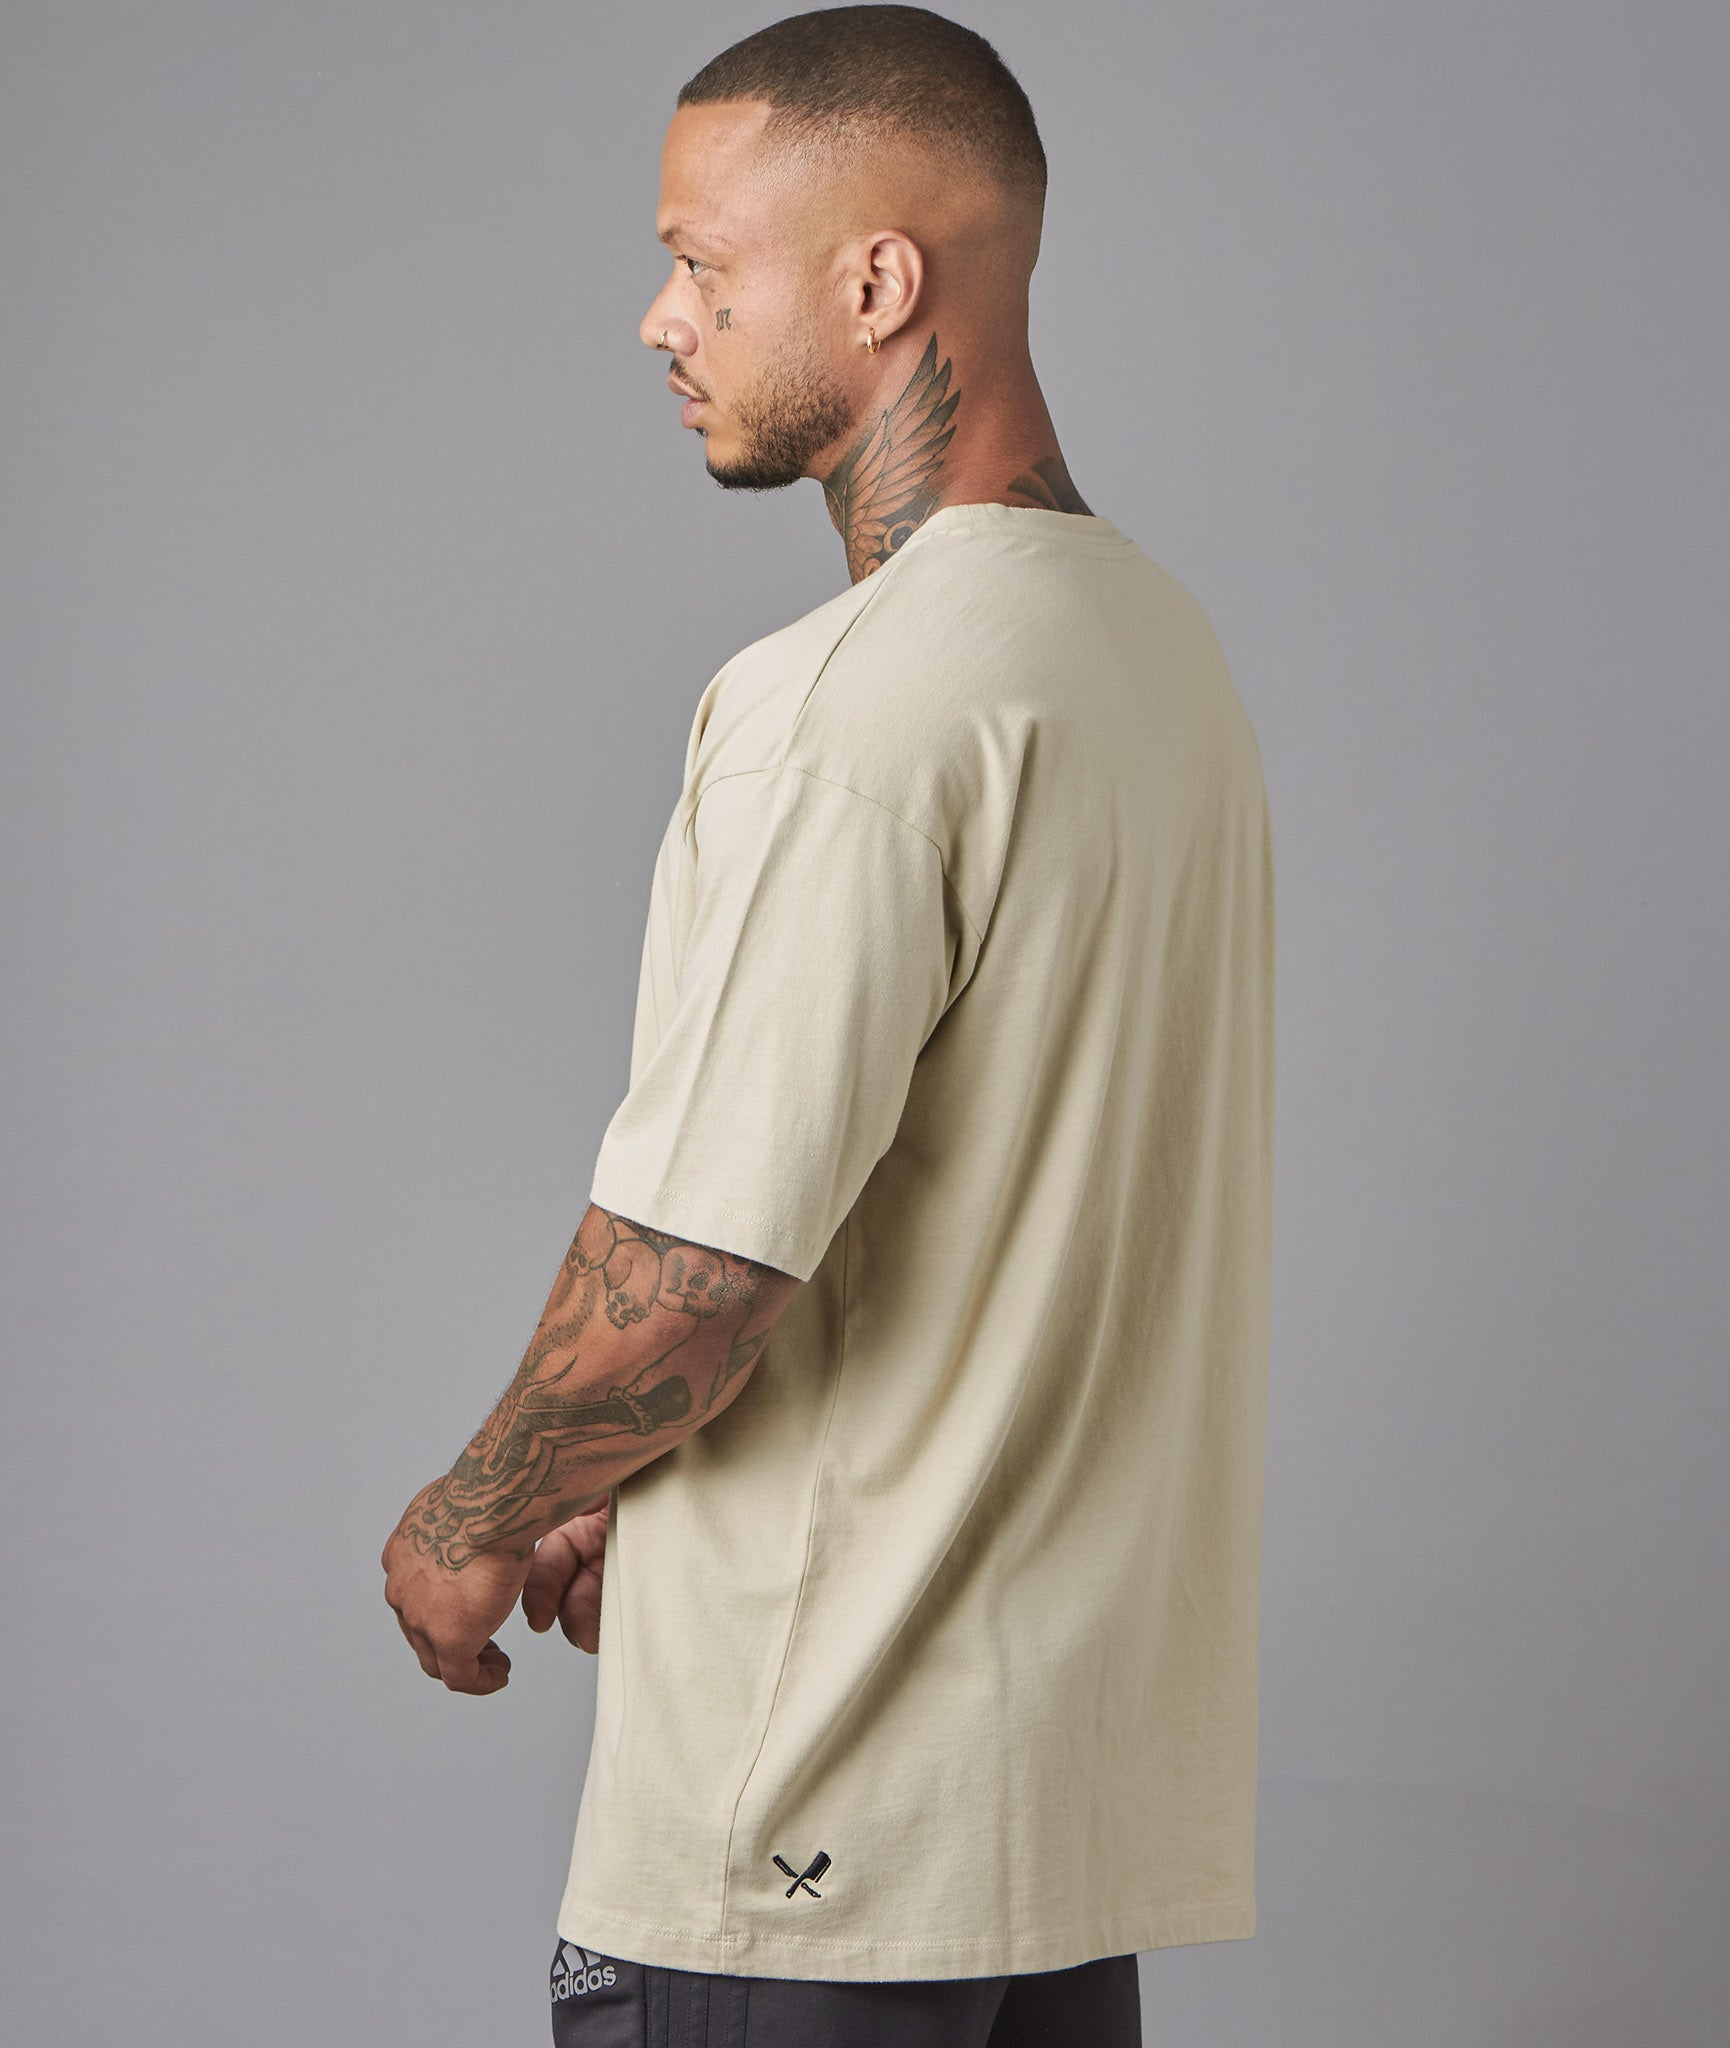 distorted people - Classic Oversized T-Shirt